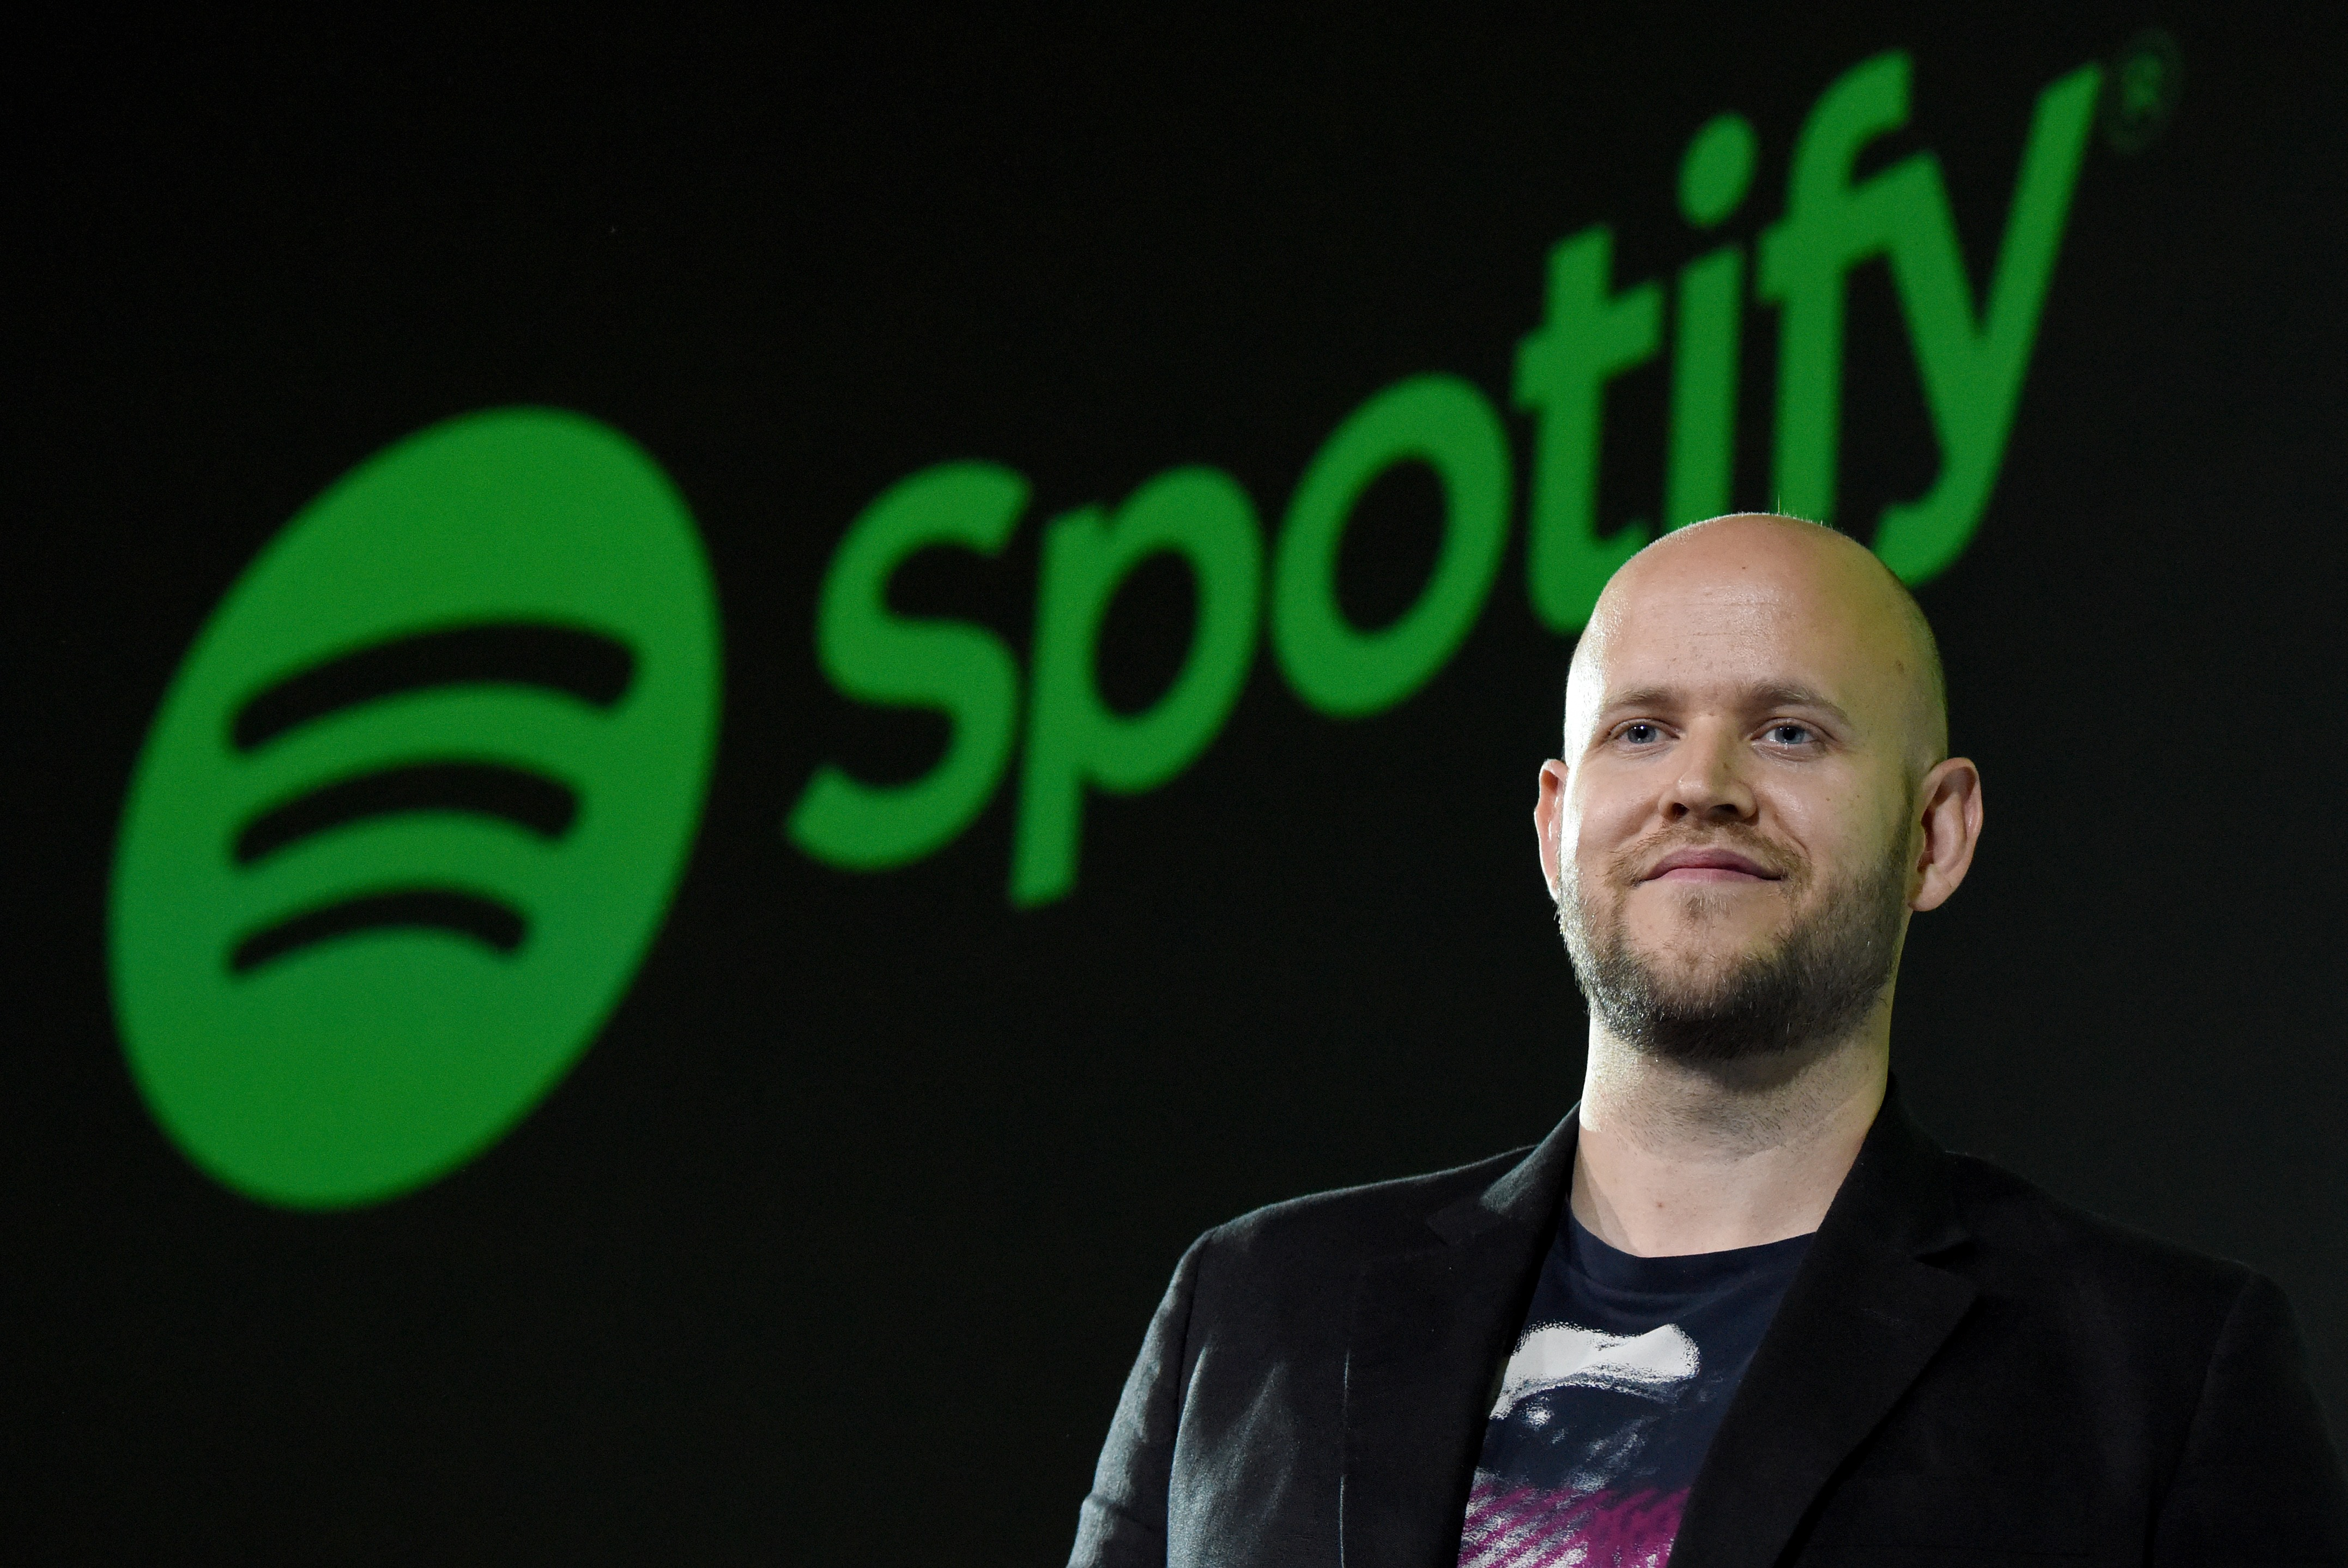 Daniel Ek, CEO of Swedish music streaming service Spotify, poses for photographers at a press conference in Tokyo on September 29, 2016.